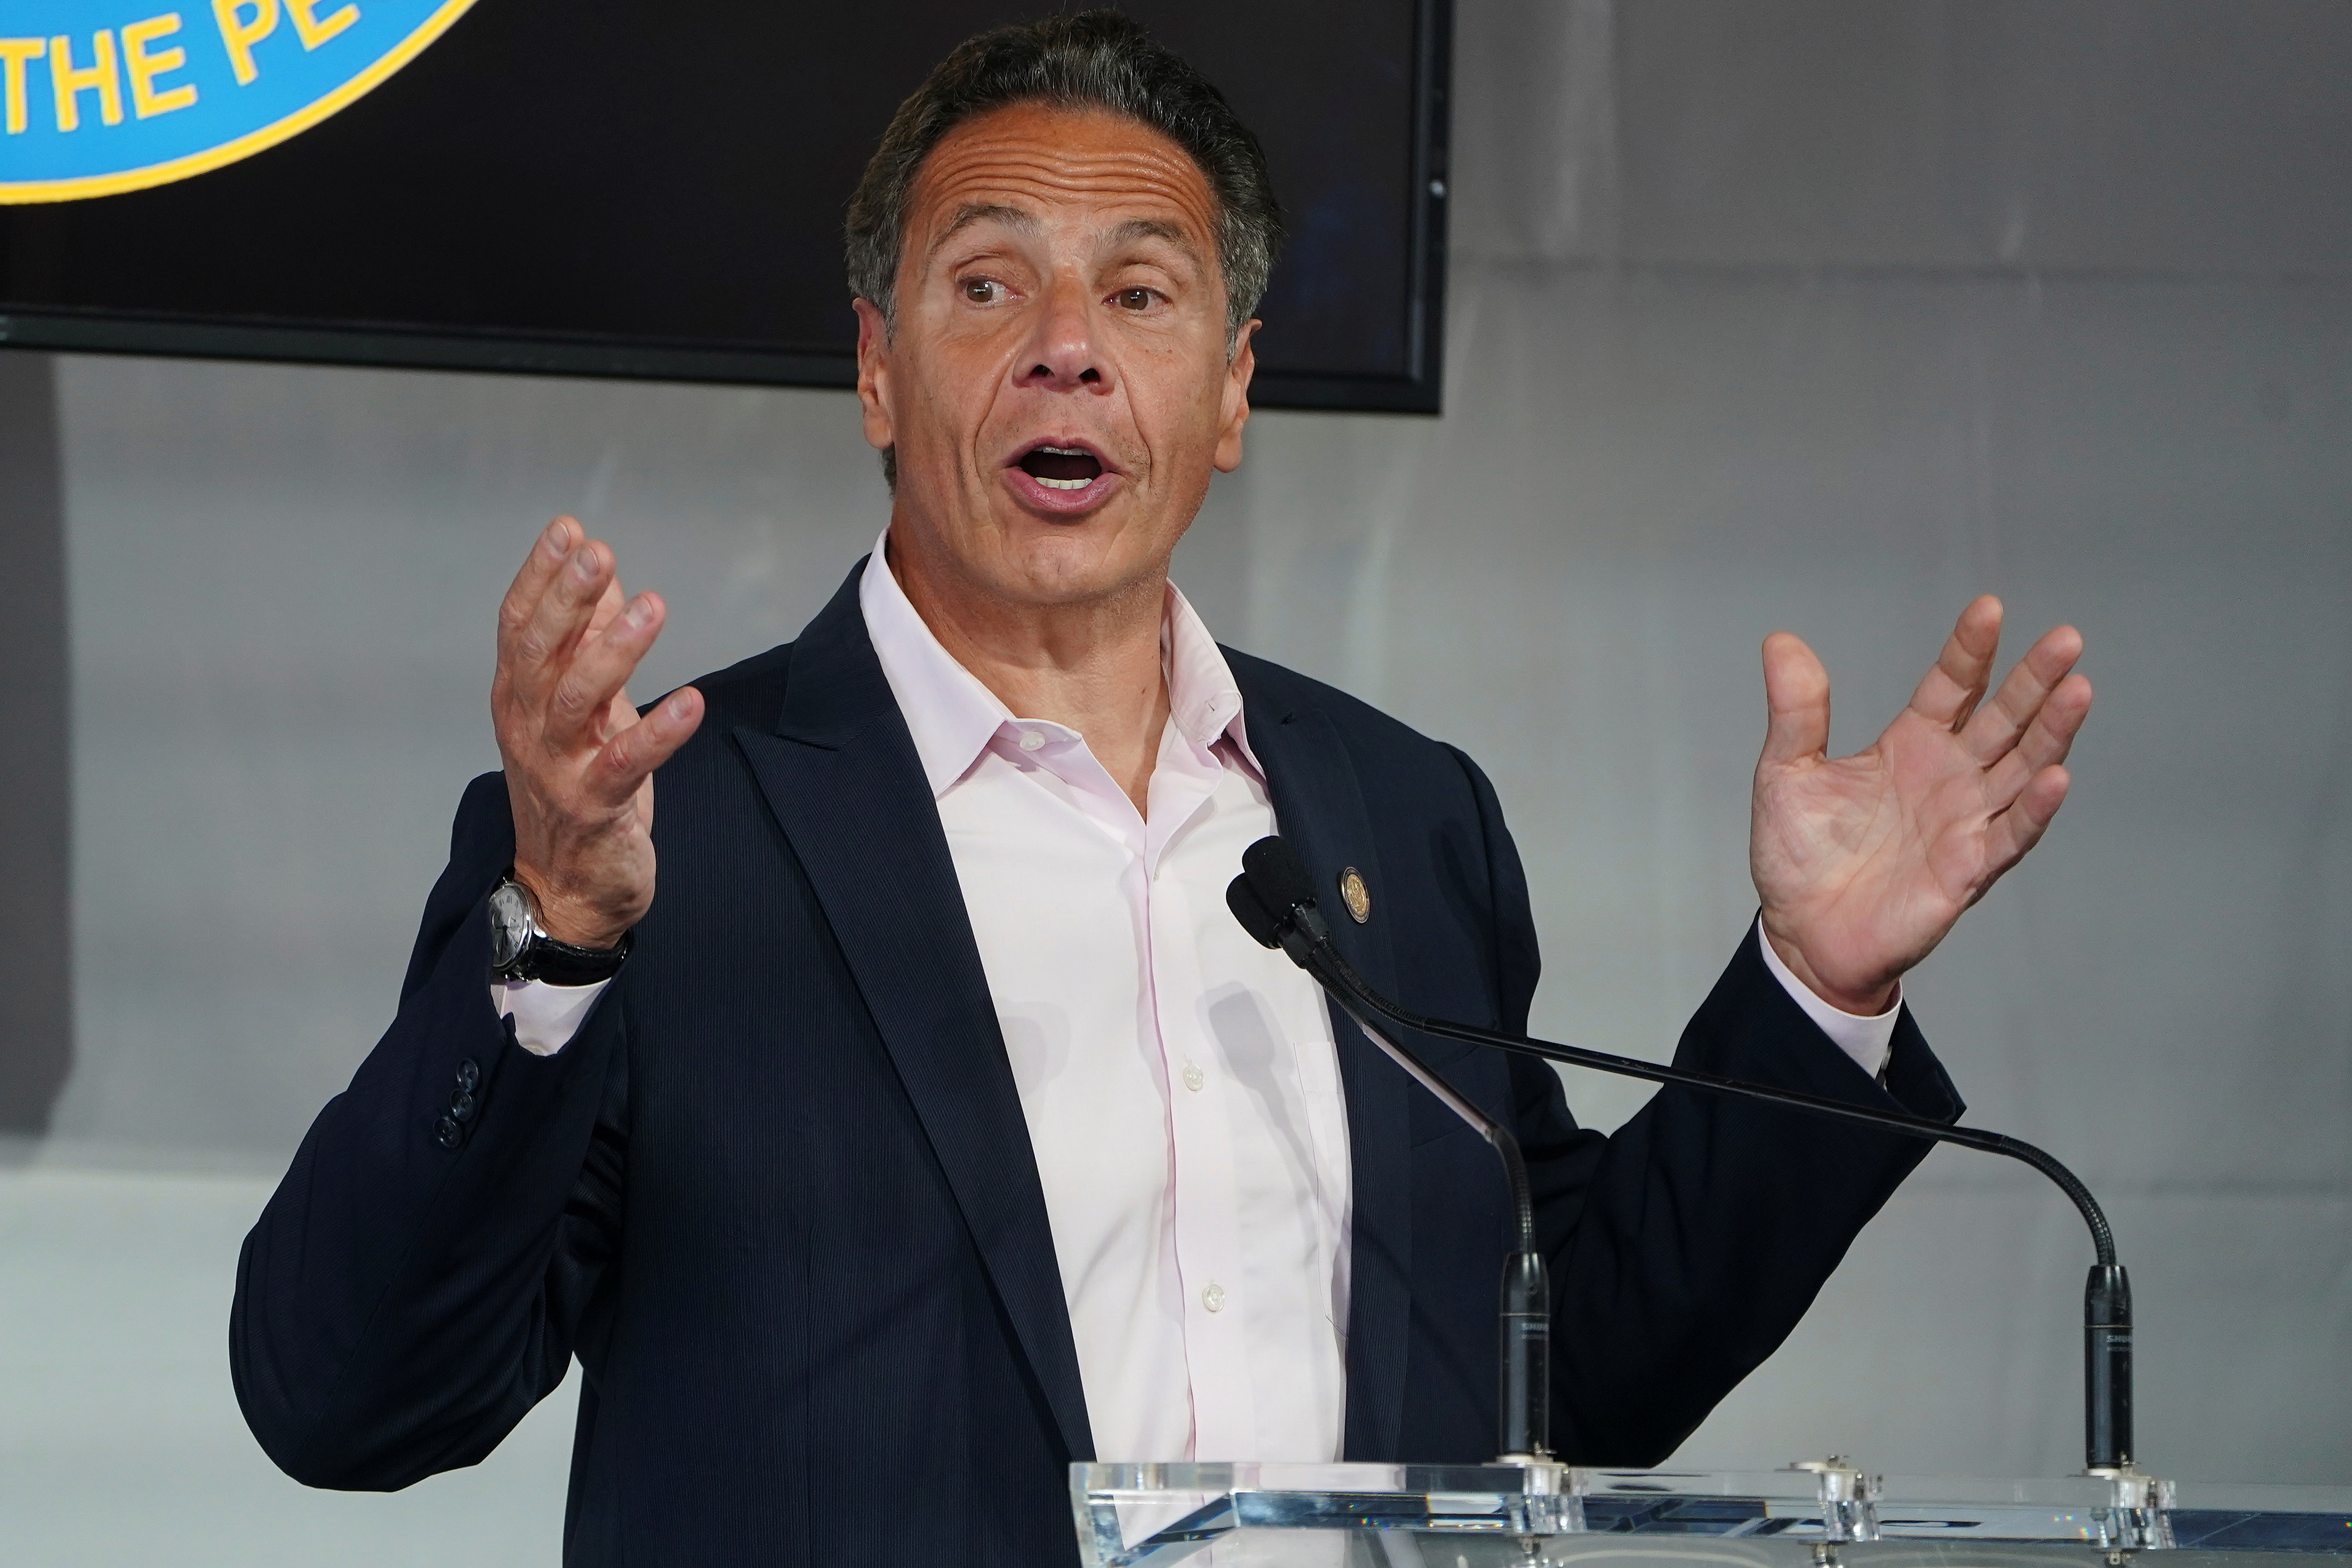 Andrew Cuomo Governor of New York appears at the opening ceremony for the Tribeca Festival in the Manhattan borough of New York City, New York, U.S., June 9, 2021.  REUTERS/Carlo Allegri/Pool